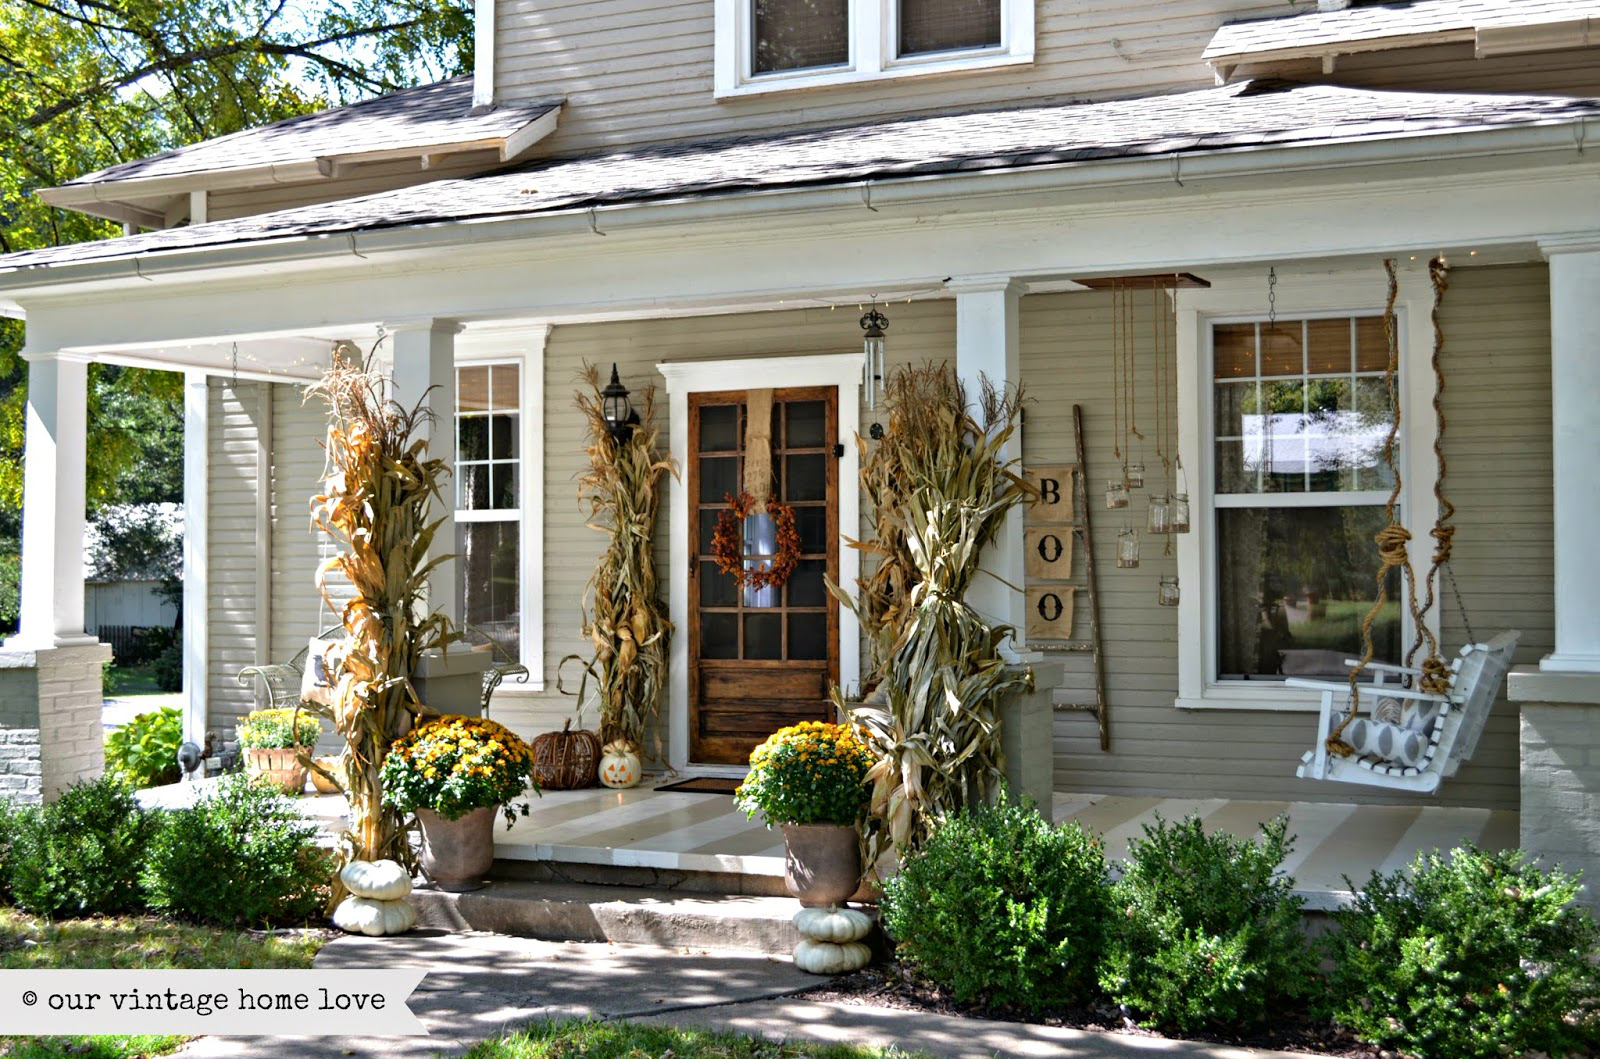 32 fall porch decorating ideas ways to decorate your porch for fall - Front Porch Design Ideas